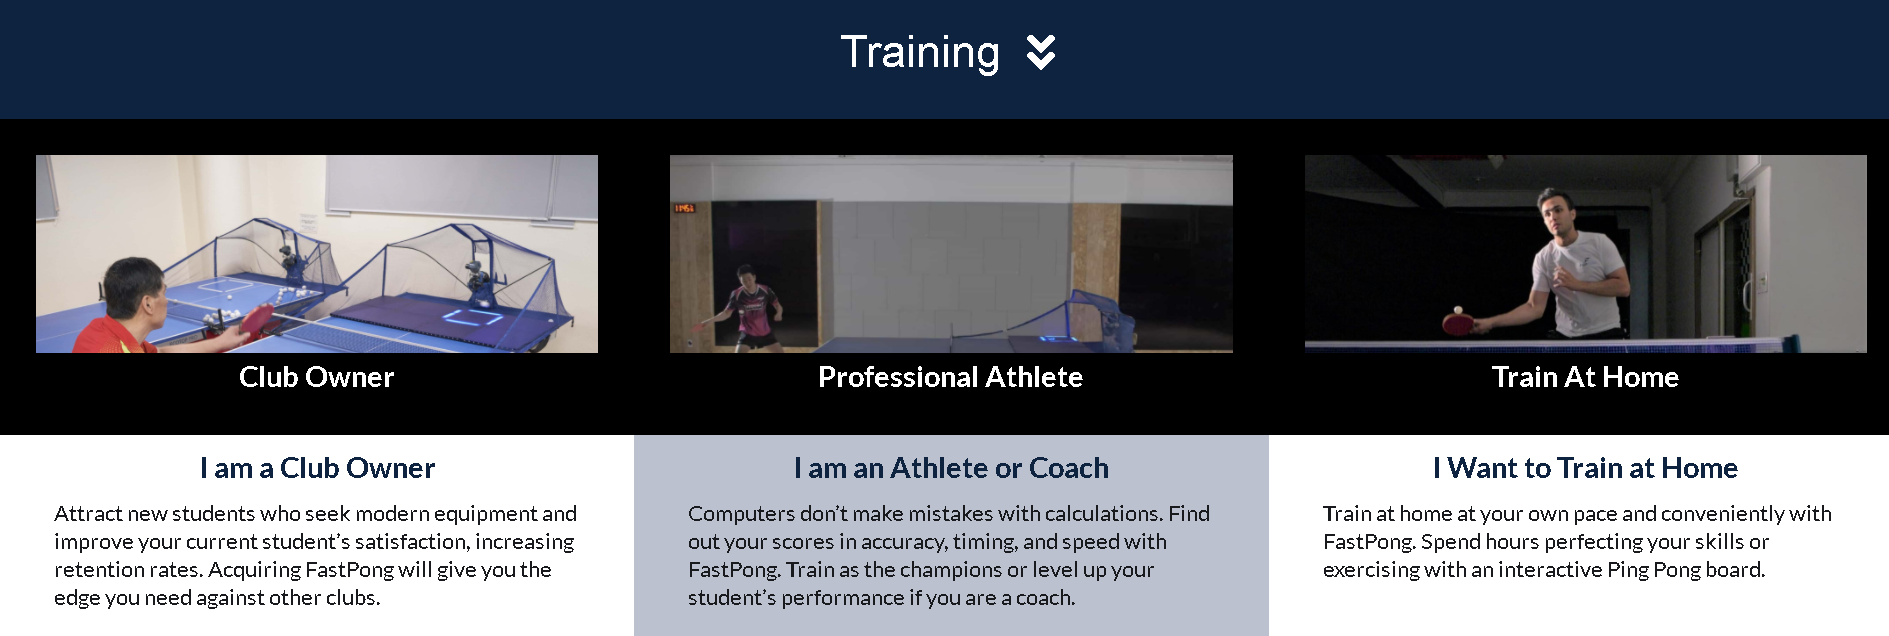 AI Interactive Table Tennis Training Machine : Training Features